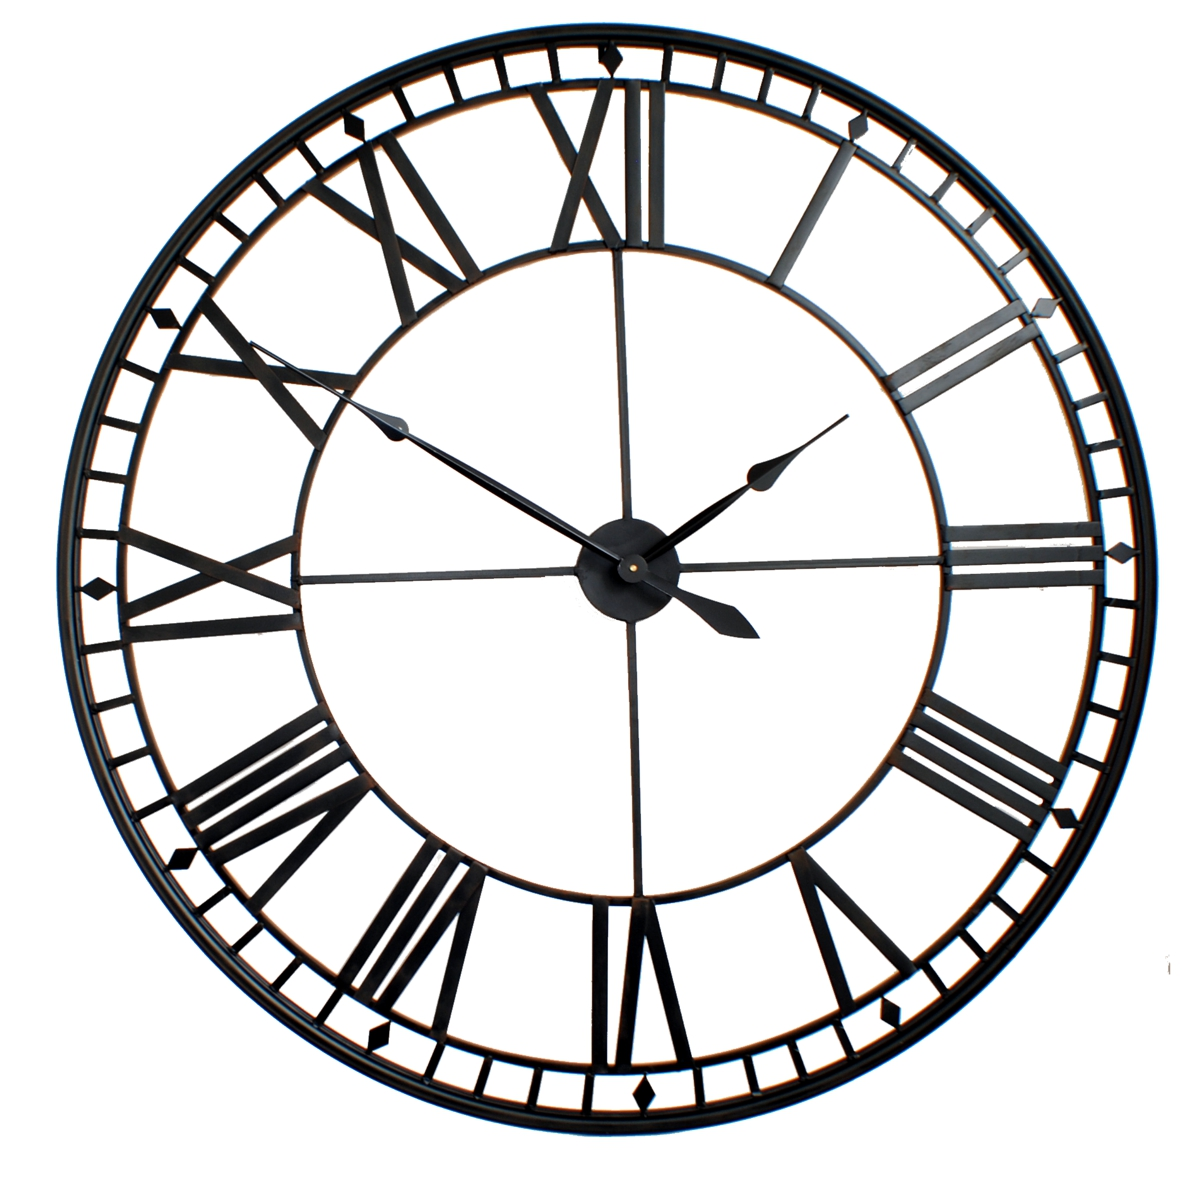 charming oversized wall clock in white and black nuance